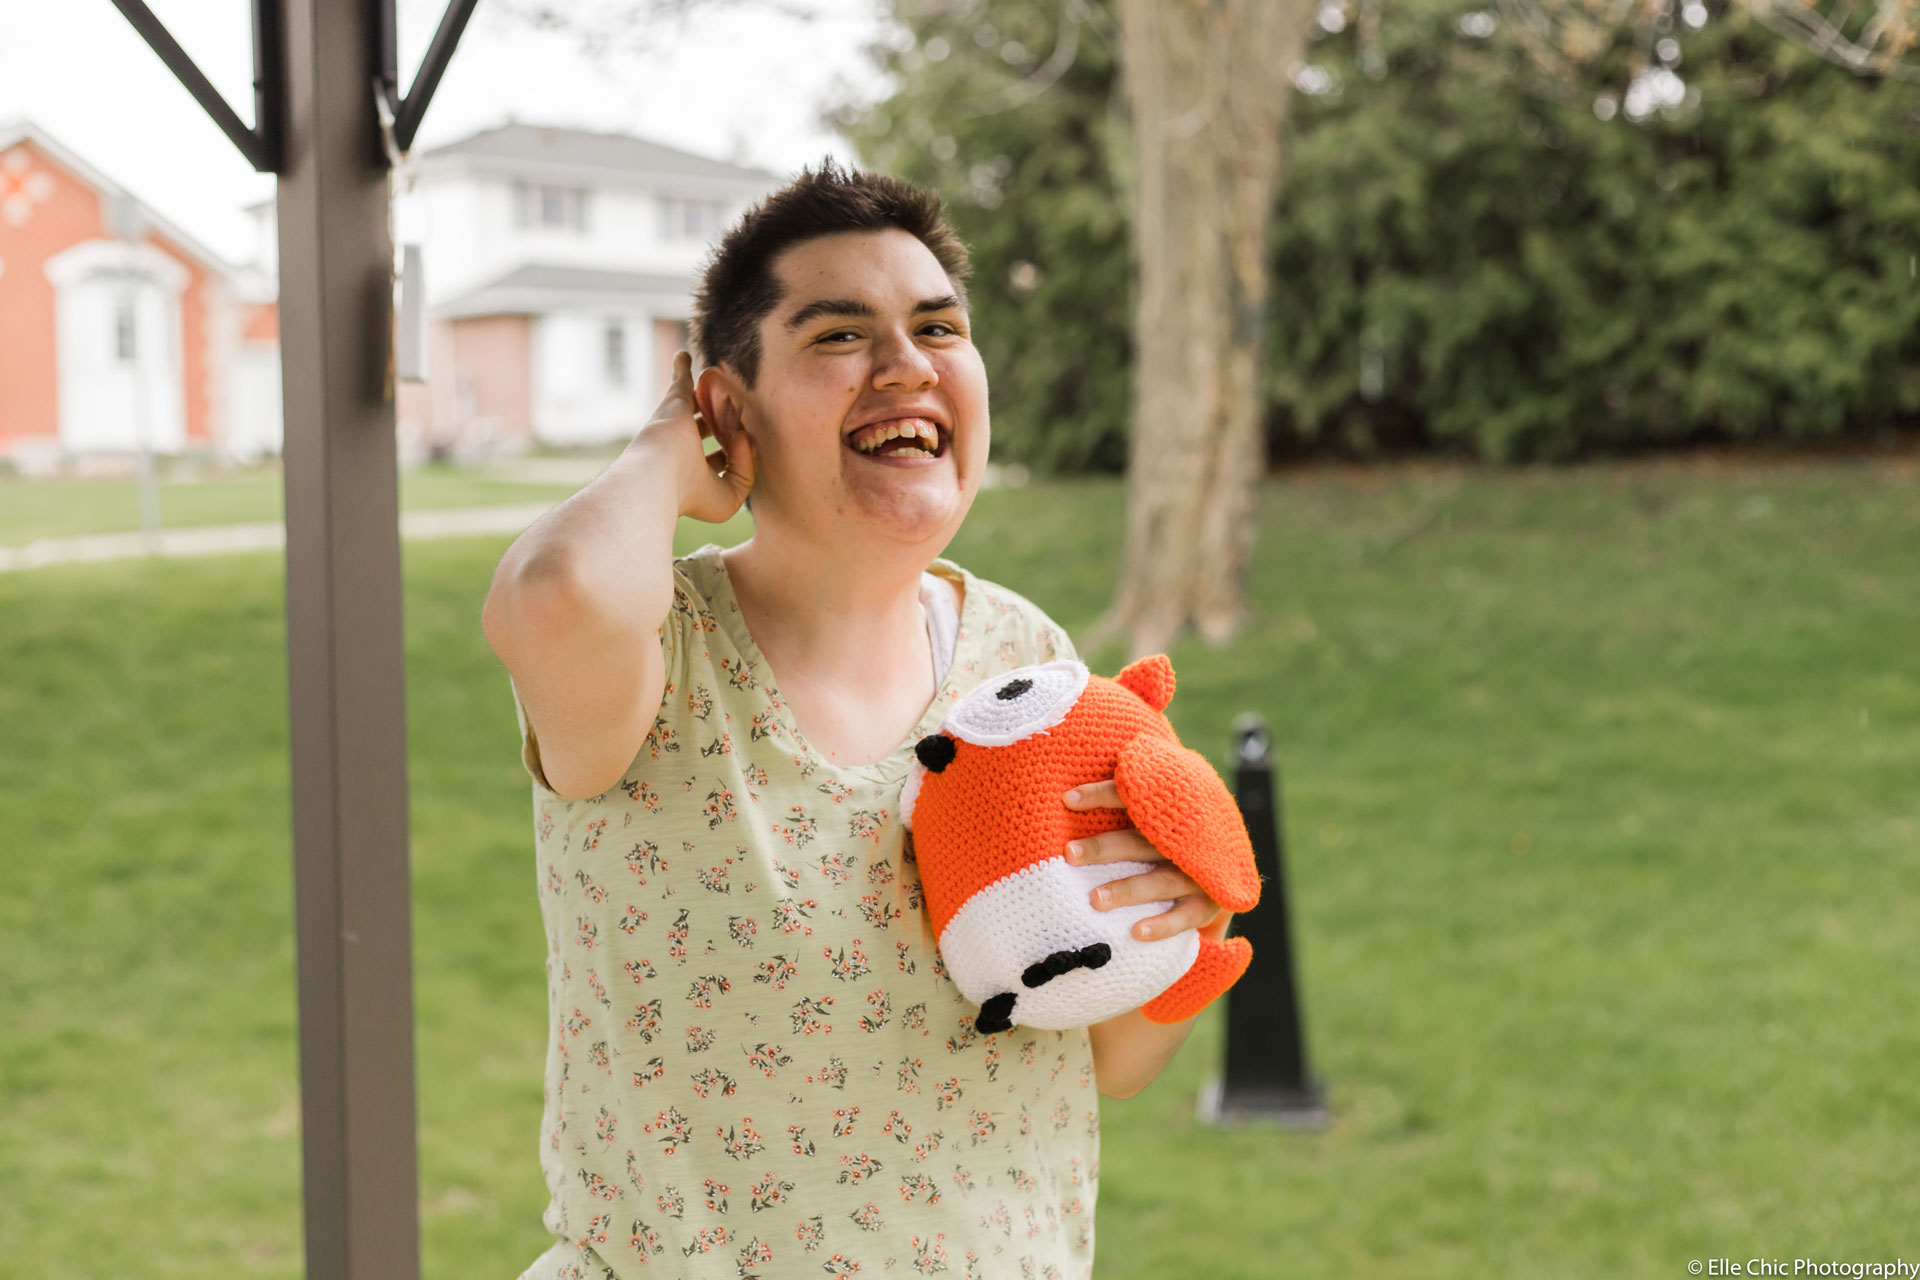 we've got this, photo series, one year later, covid-19, community living guelph wellington, elle chic photography, guelph ontario, disability, frontline heroes, nadine, plants, gardening